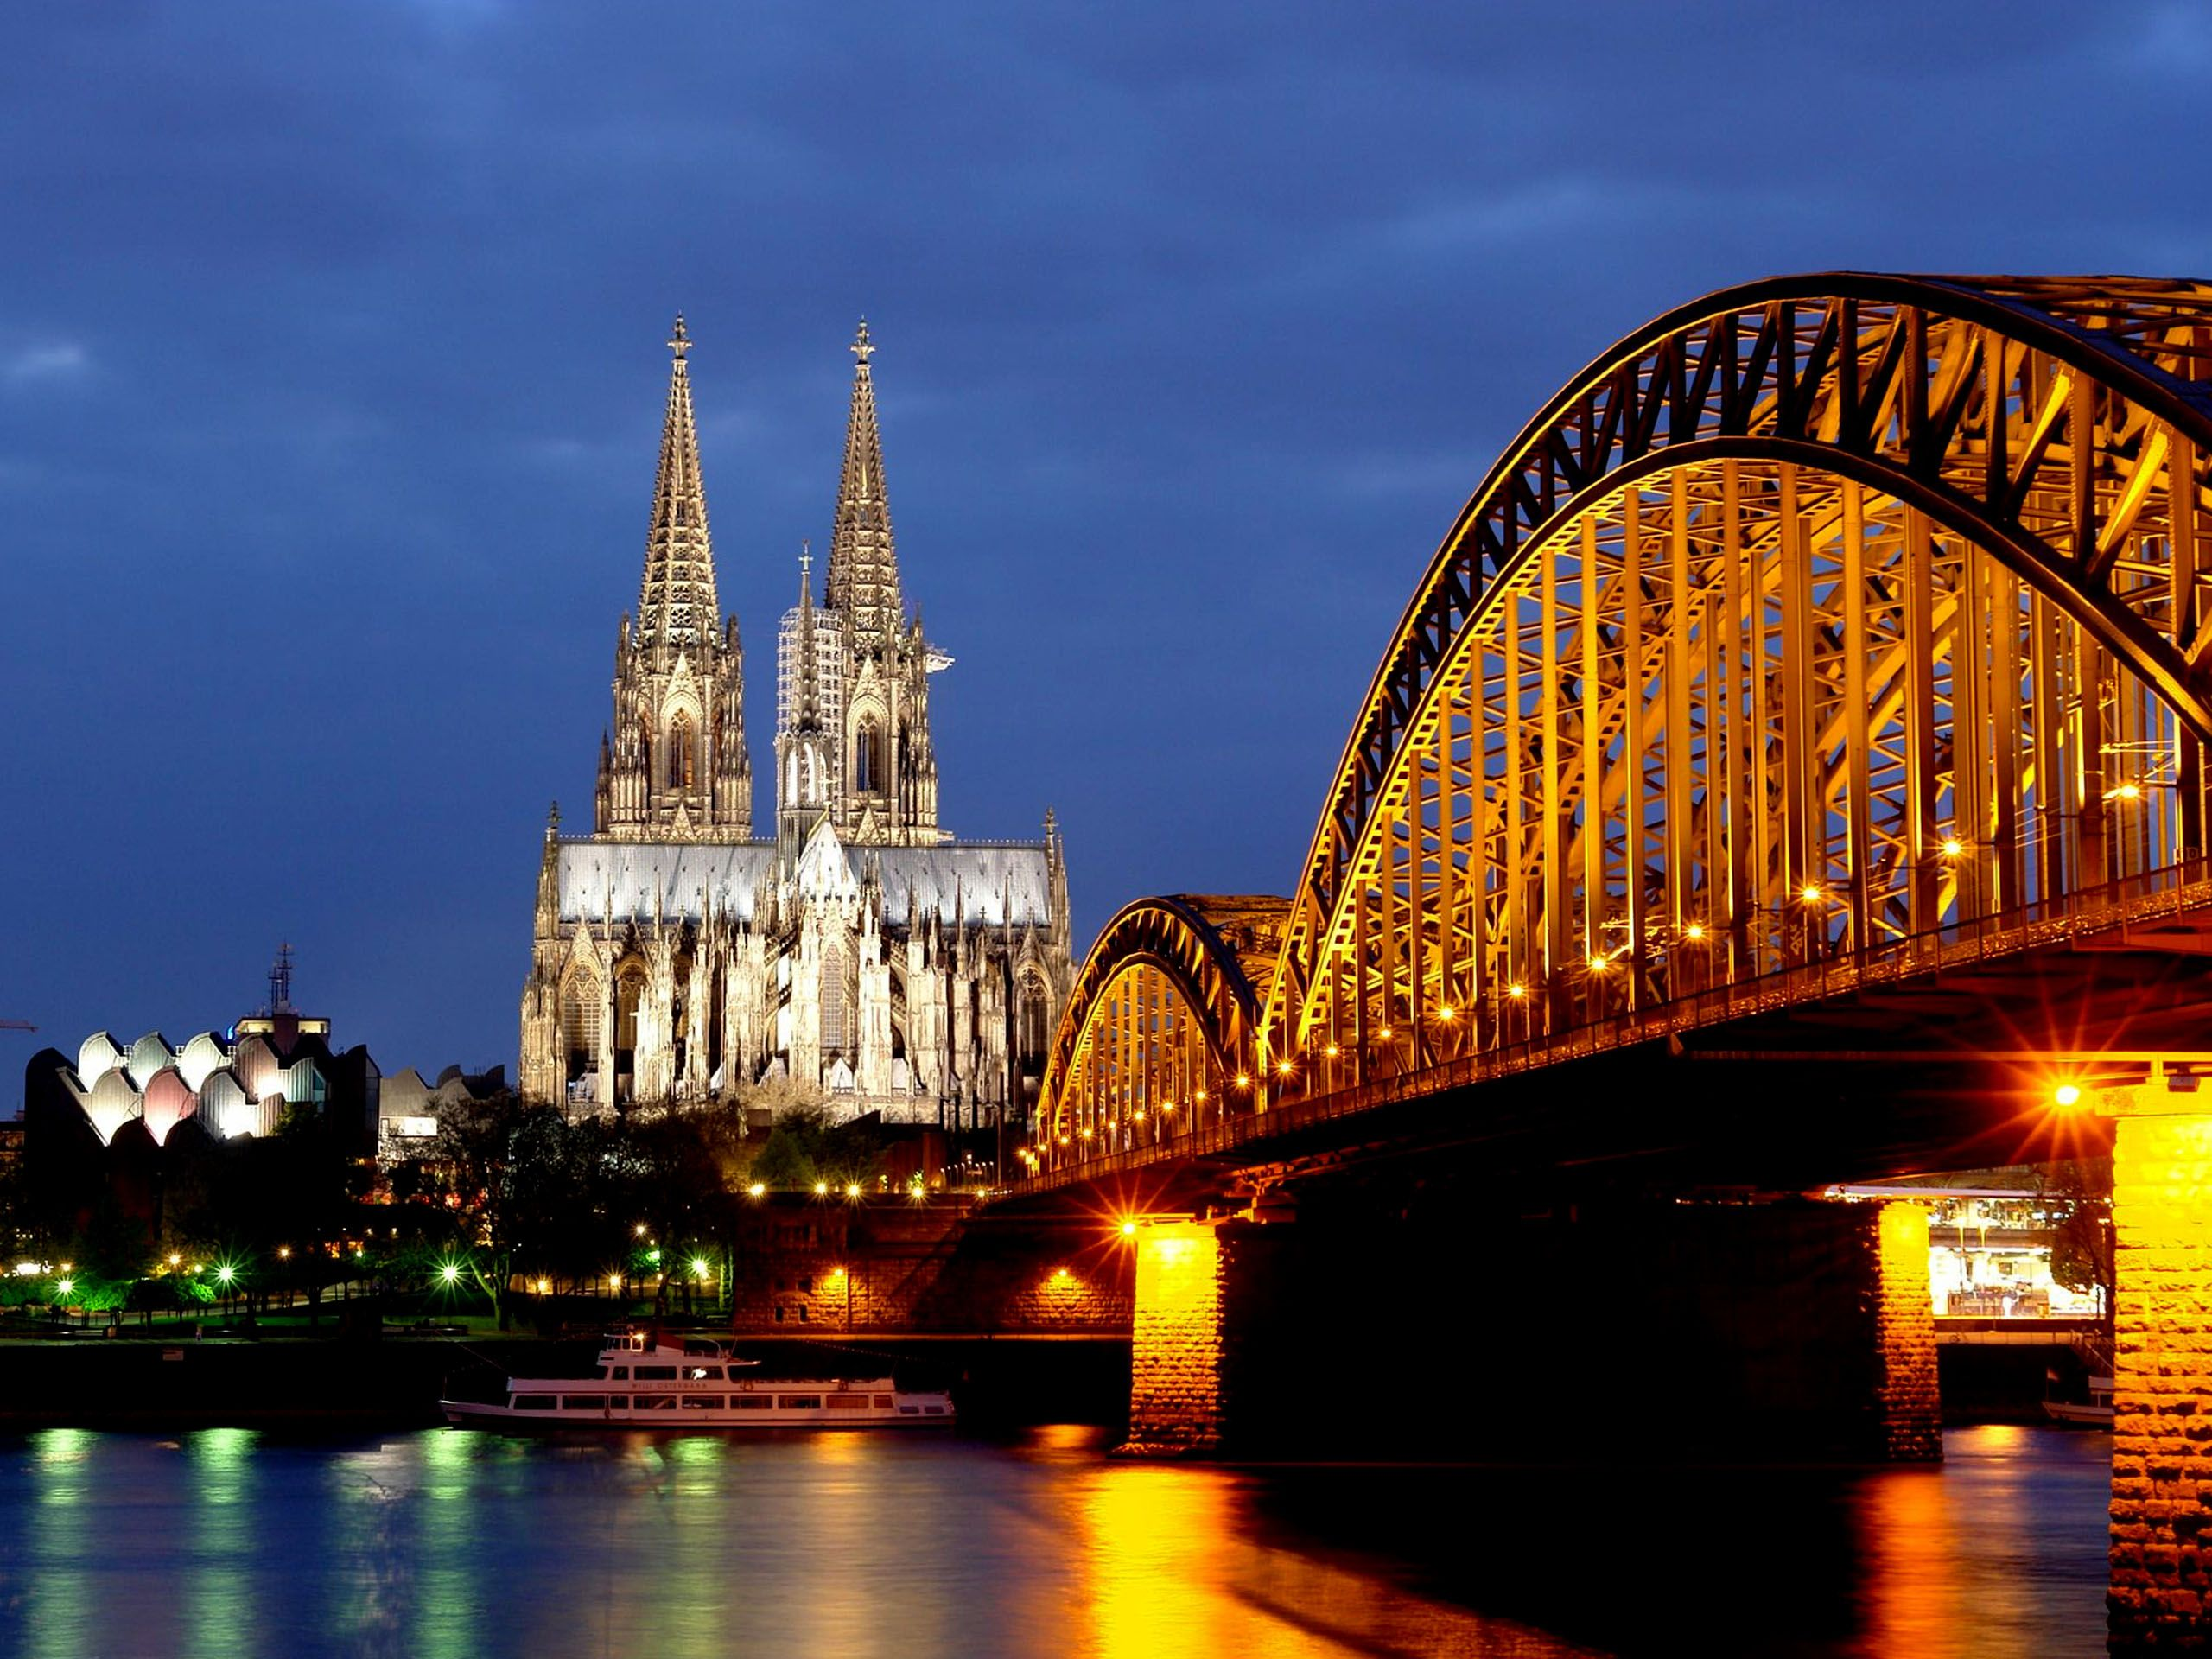 Rhine River, Hohenzollern Bridge, Cologne Cathedral – Deutz, Cologne, Germany